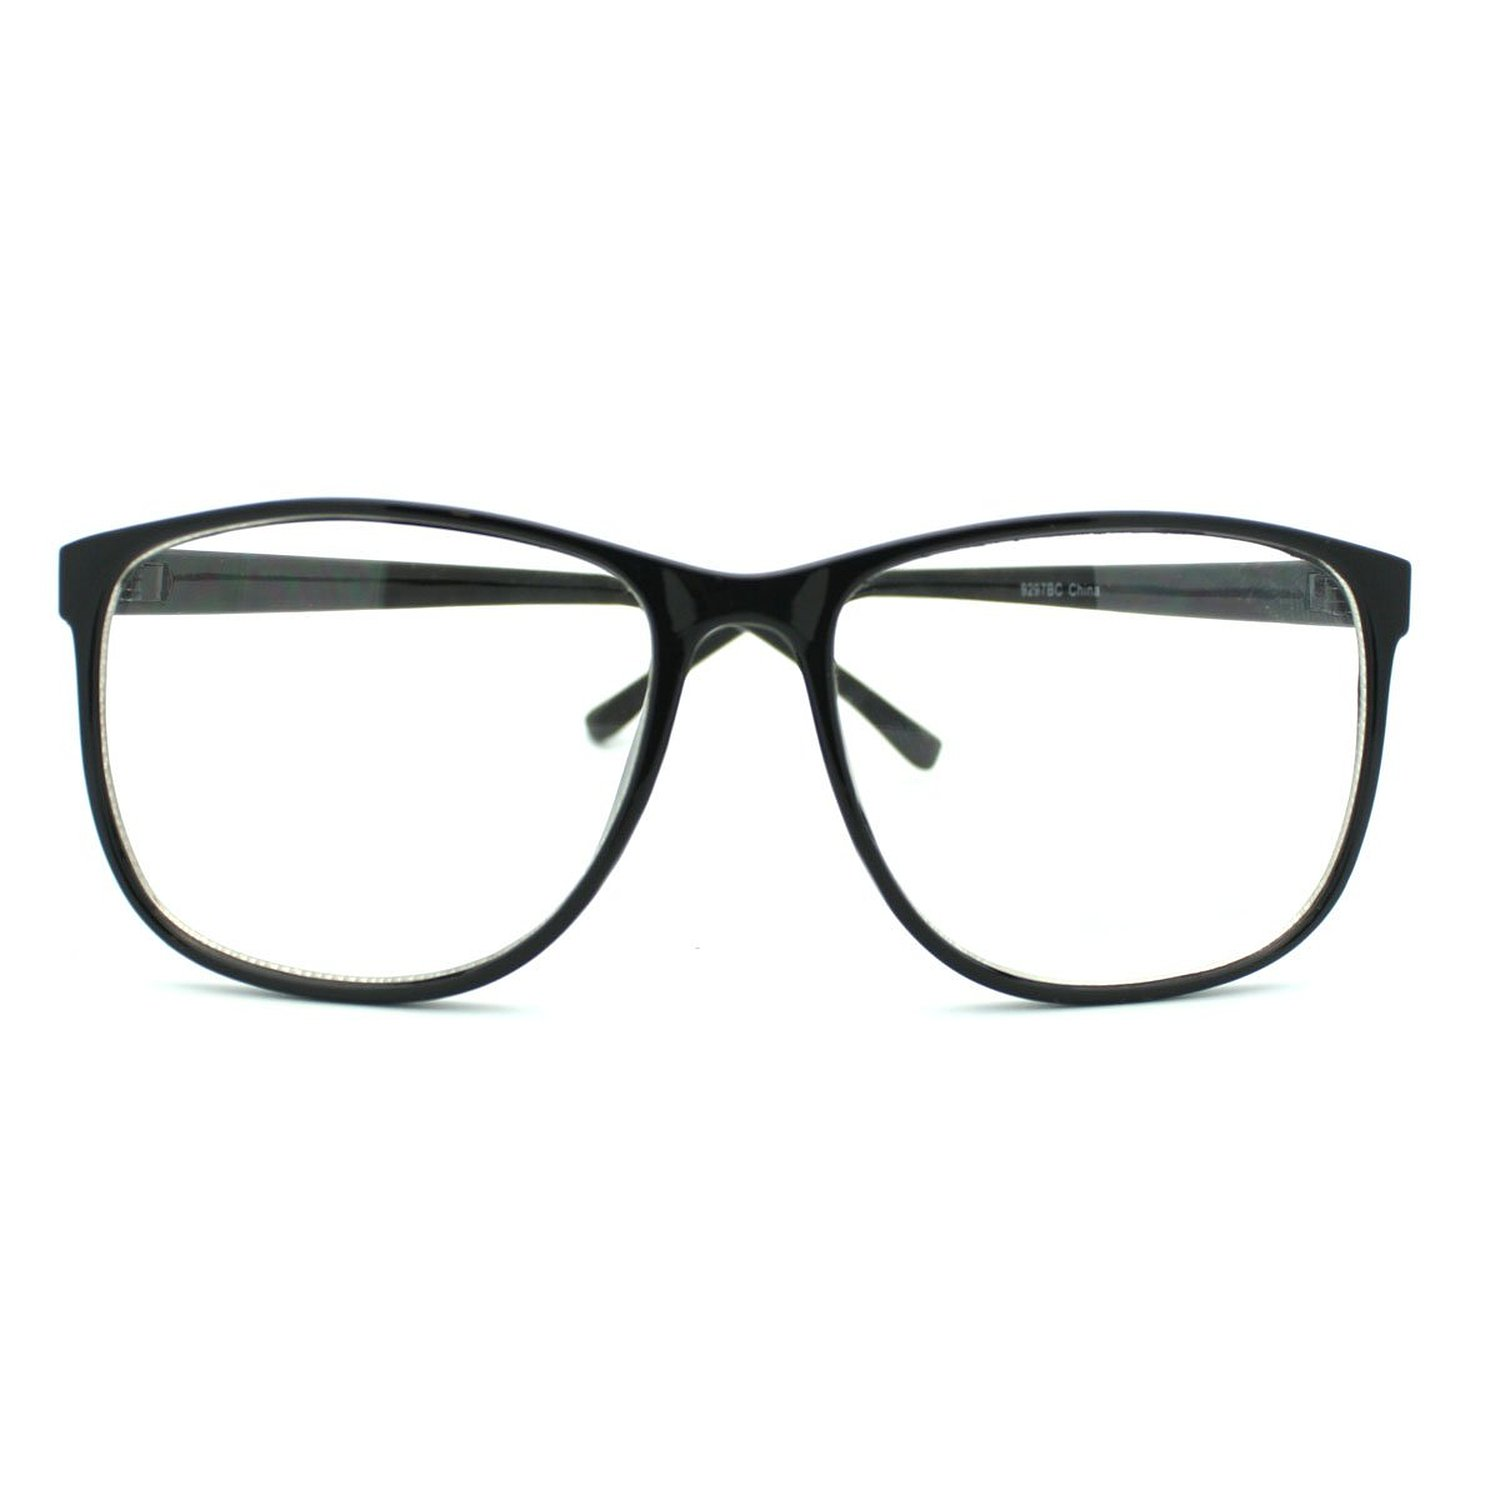 Black Large Nerdy Thin Plastic Frame with clear lenses